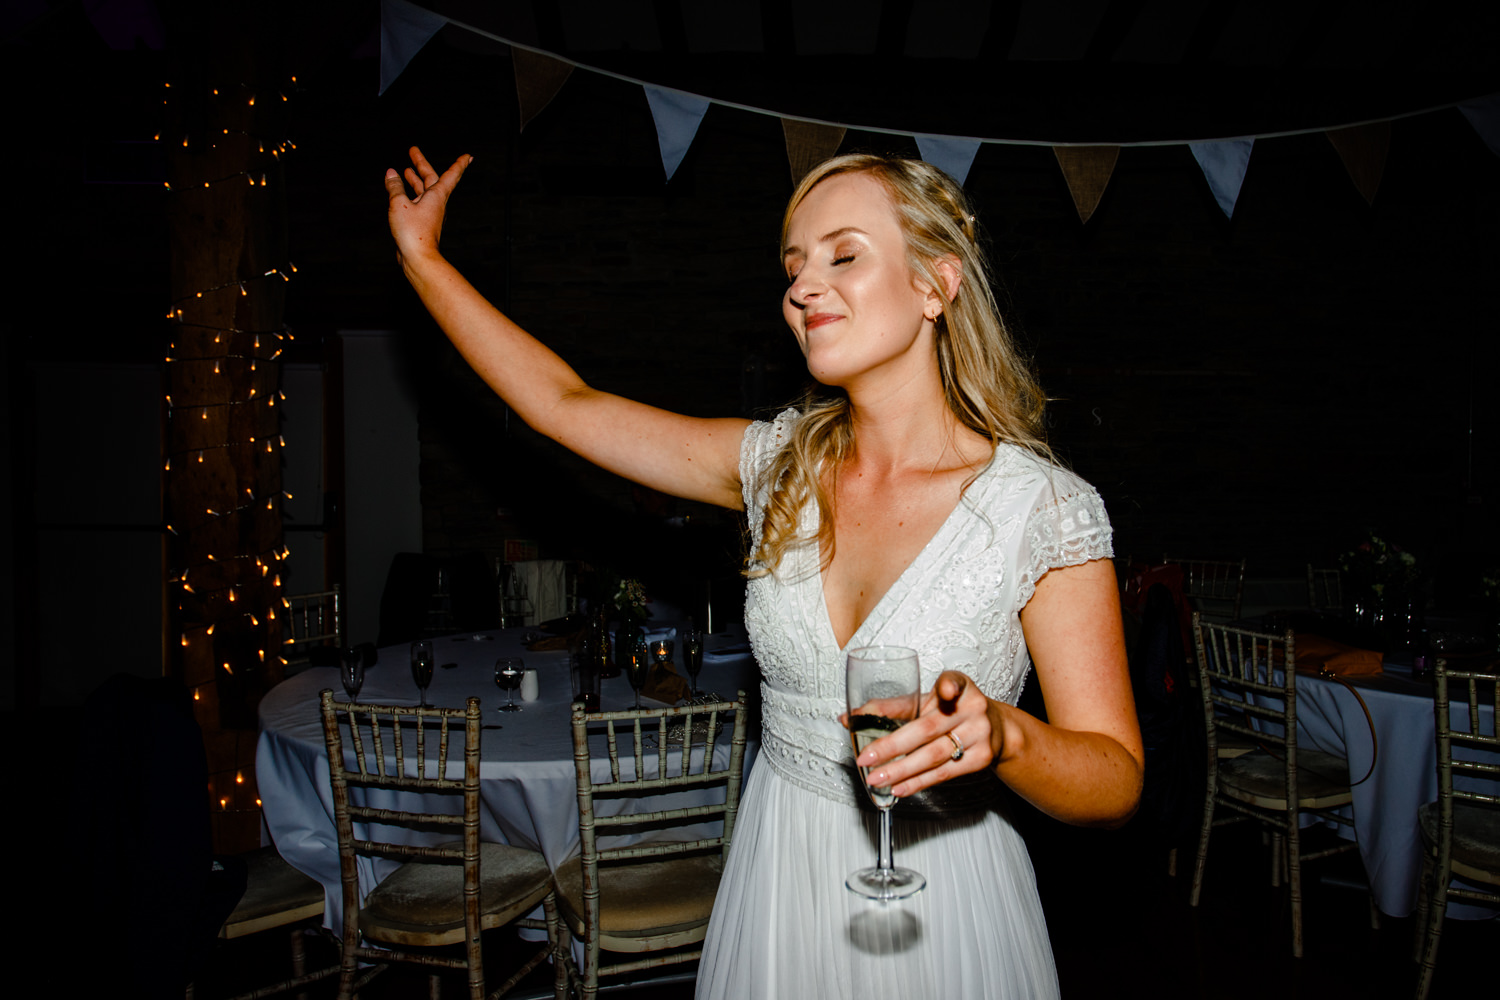 Katie-Luke-Huddersfield-wedding-photographer-Katie-Luke095.jpg